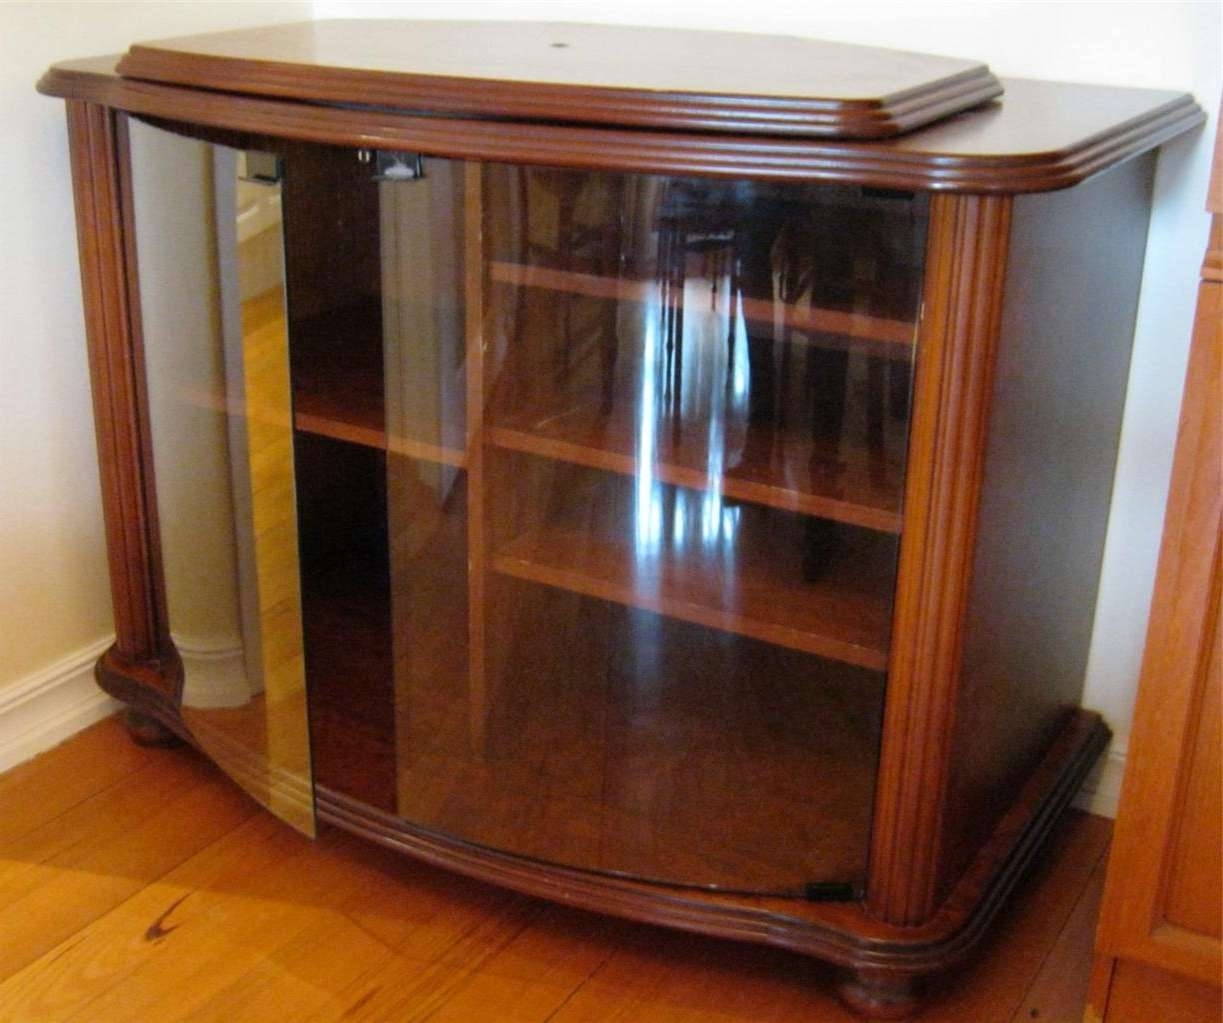 Corner Tv Stand Cabinet With Frameless Glass Doors – Decofurnish With Glass Tv Cabinets With Doors (View 3 of 20)